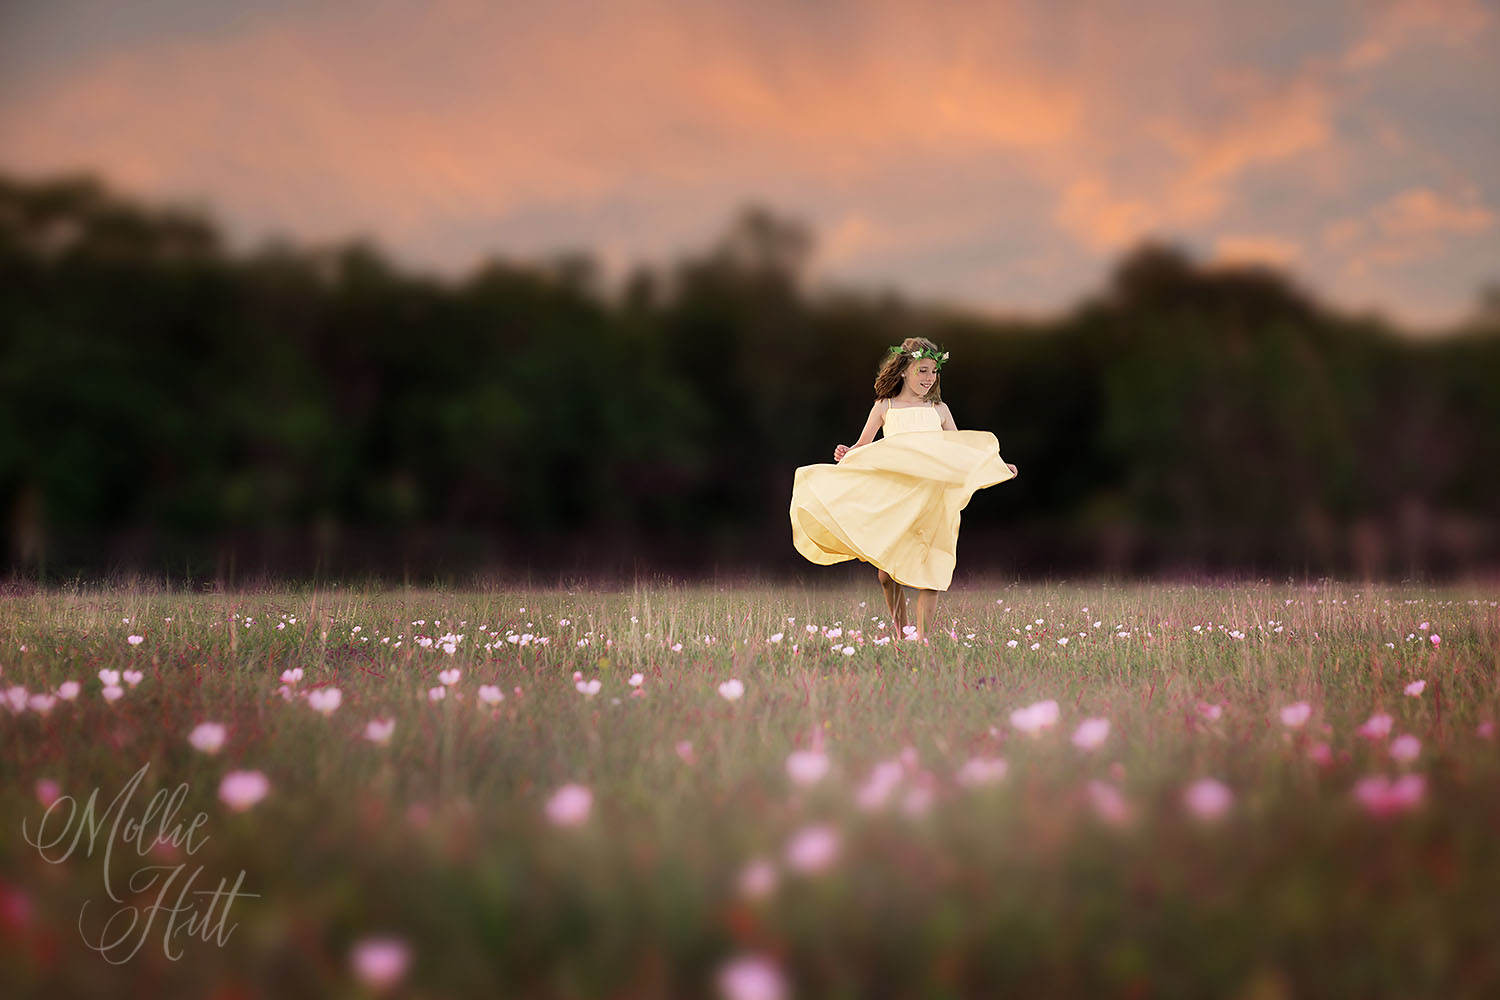 Fairy princess dancing at sunset in a yellow dress in a field of pink flowers